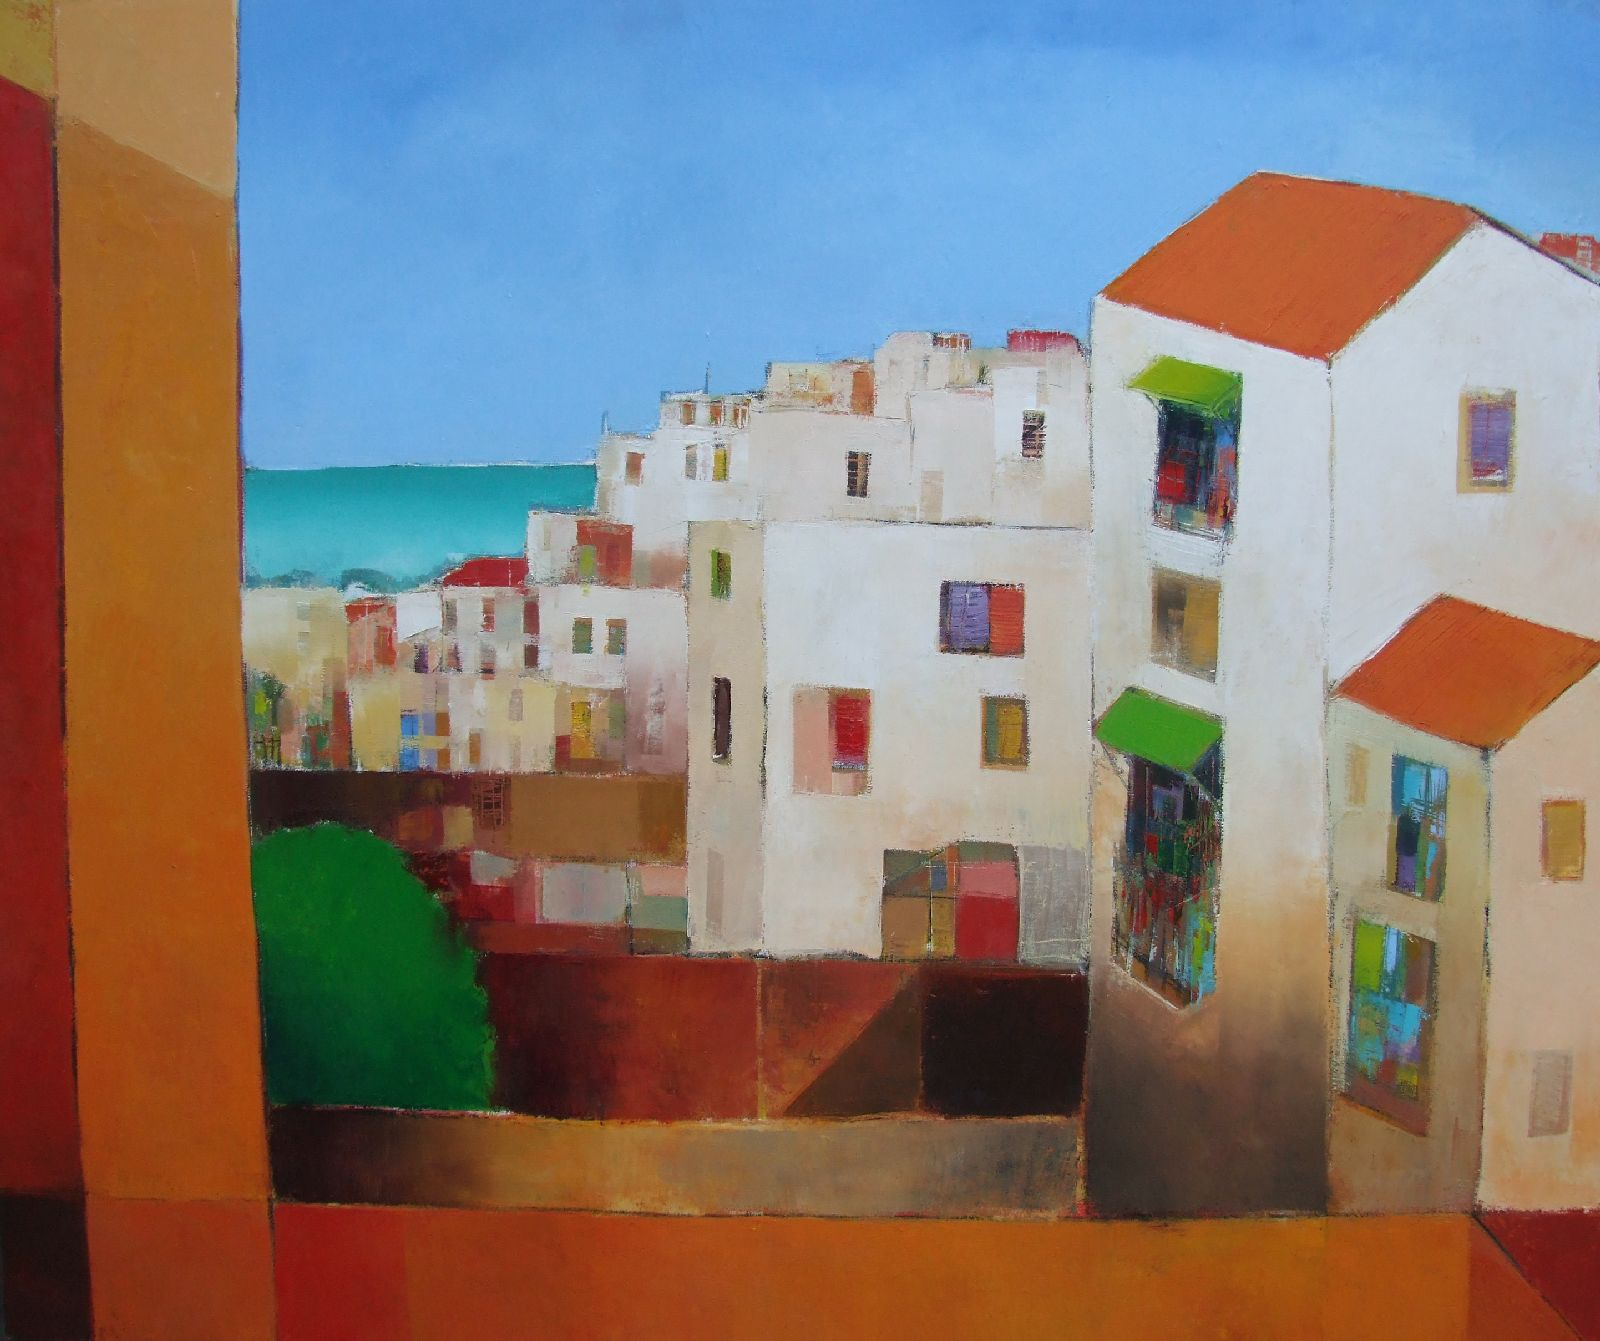 Barrio Alto III by Cormac O'Leary